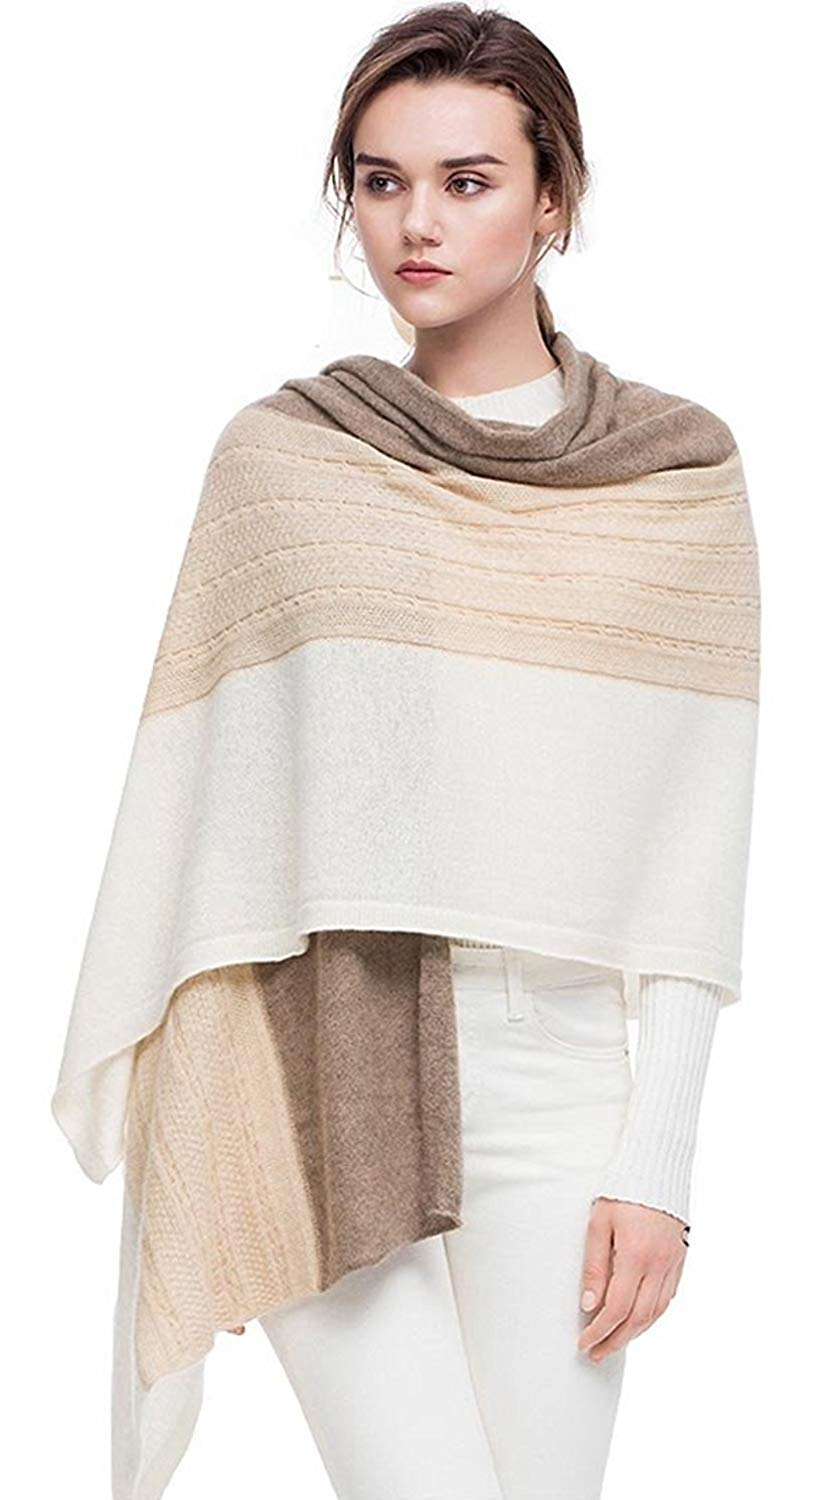 Great cashmere scarf